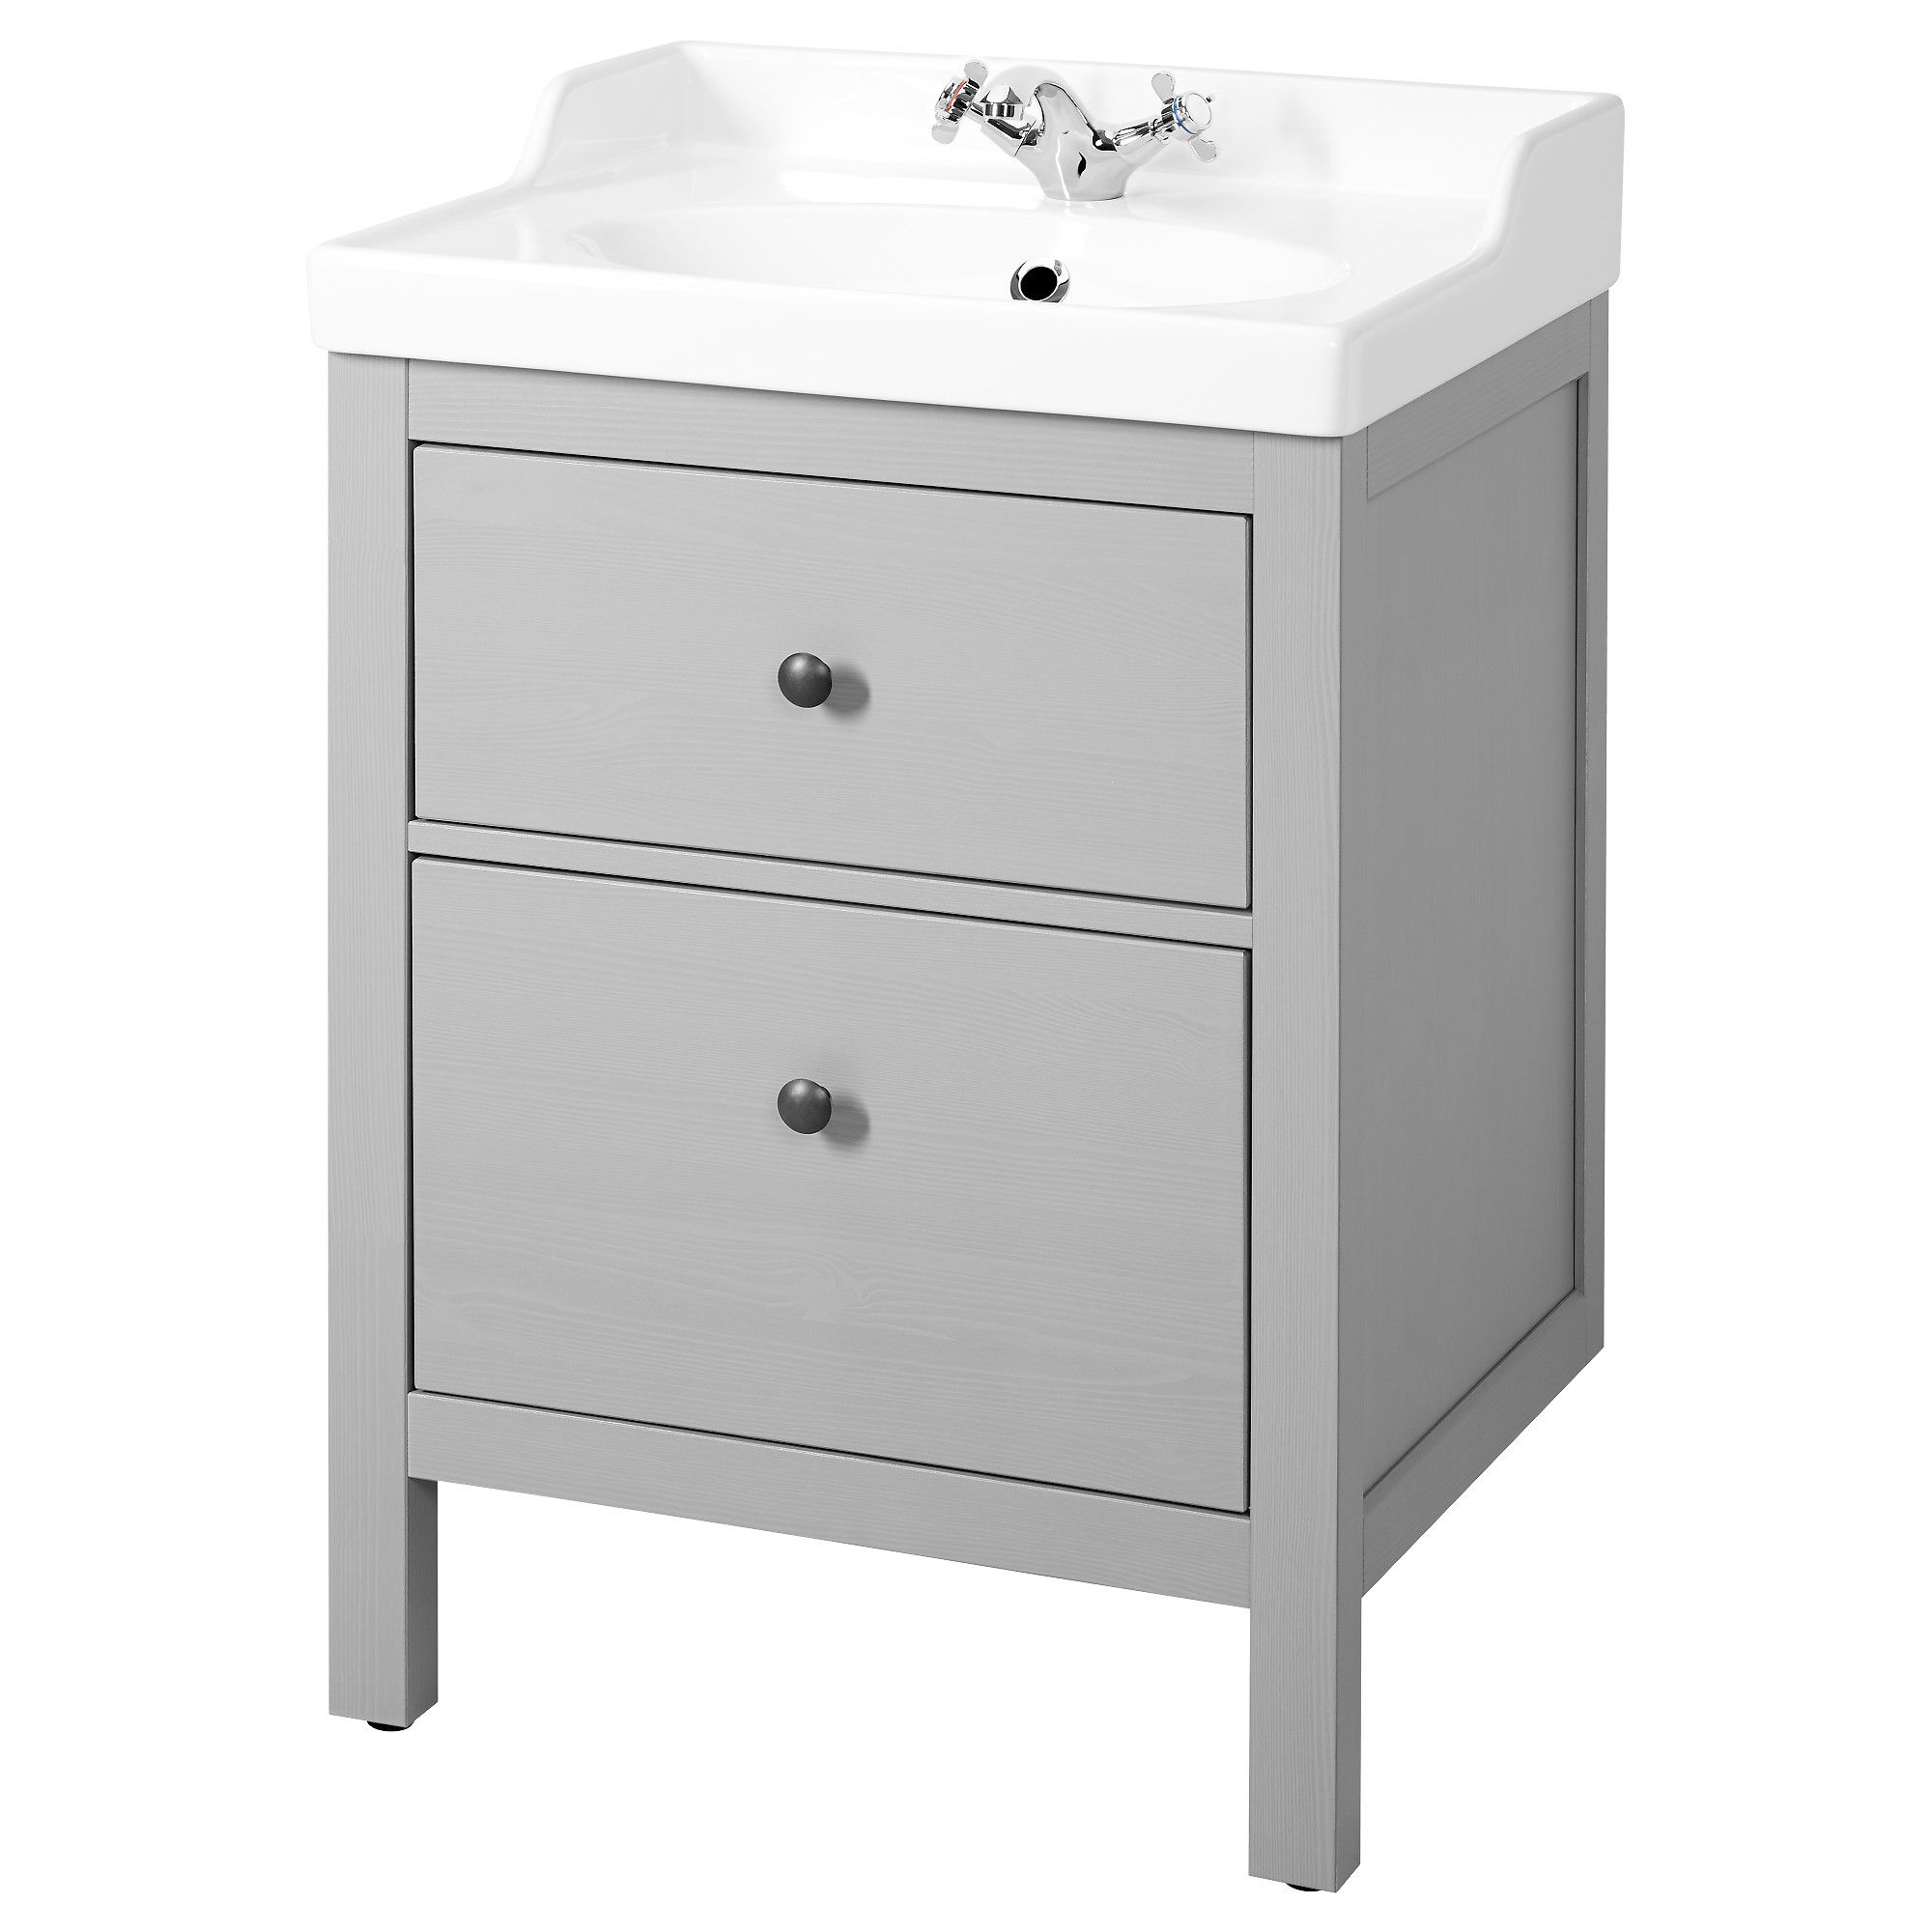 HEMNES / RÄTTVIKEN Sink cabinet with 2 drawers, gray | HEMNES, Water ...